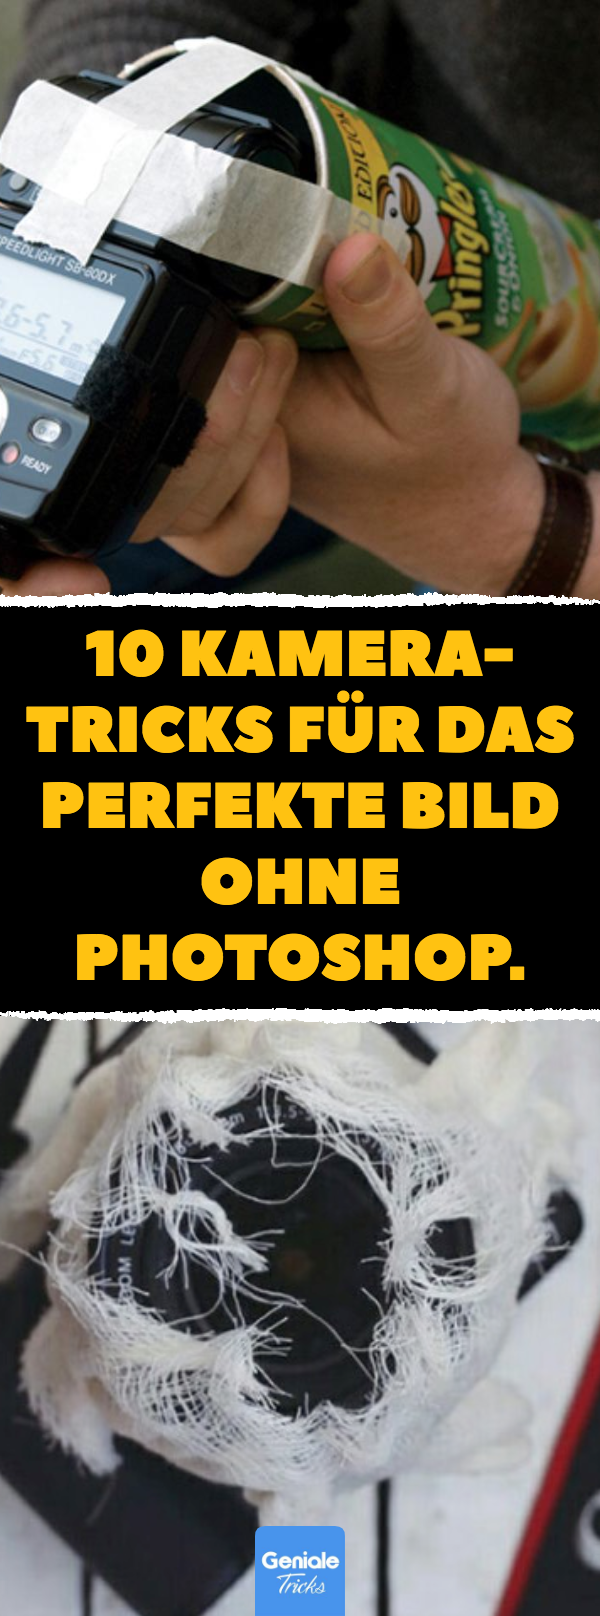 10 photography tricks that make Photoshop look old.